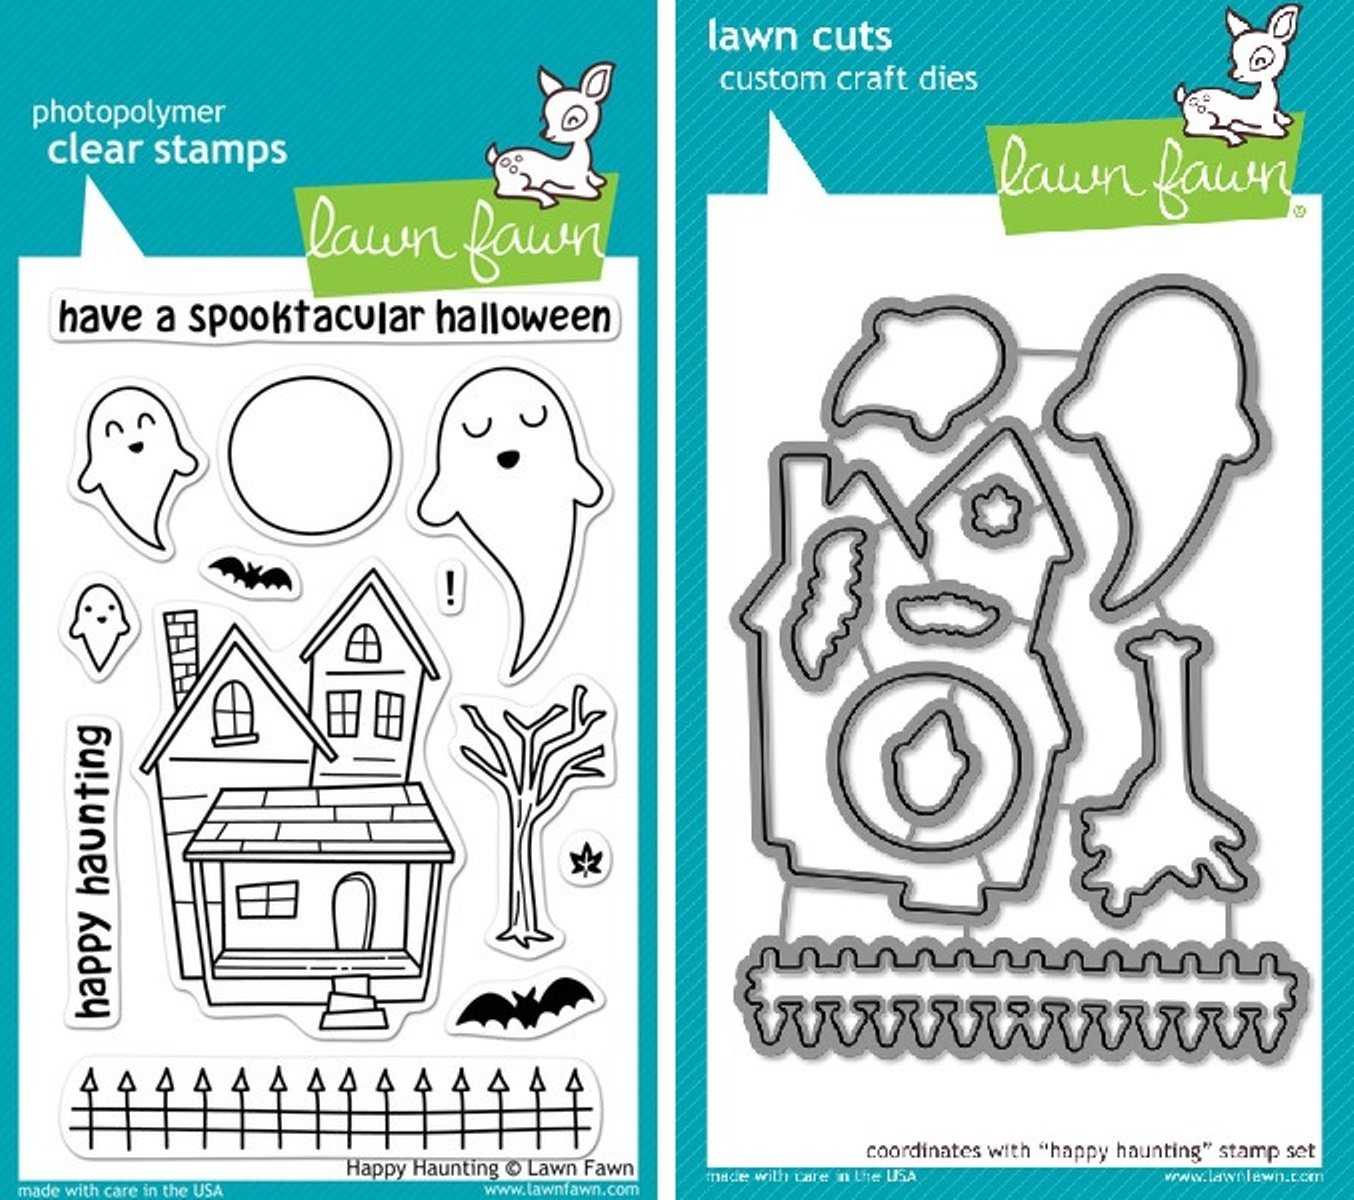 Lawn Fawn Happy Haunting Clear Stamp and Die Set - Includes One Each of LF357 Stamp & LF966 Die - Bundle Of 2